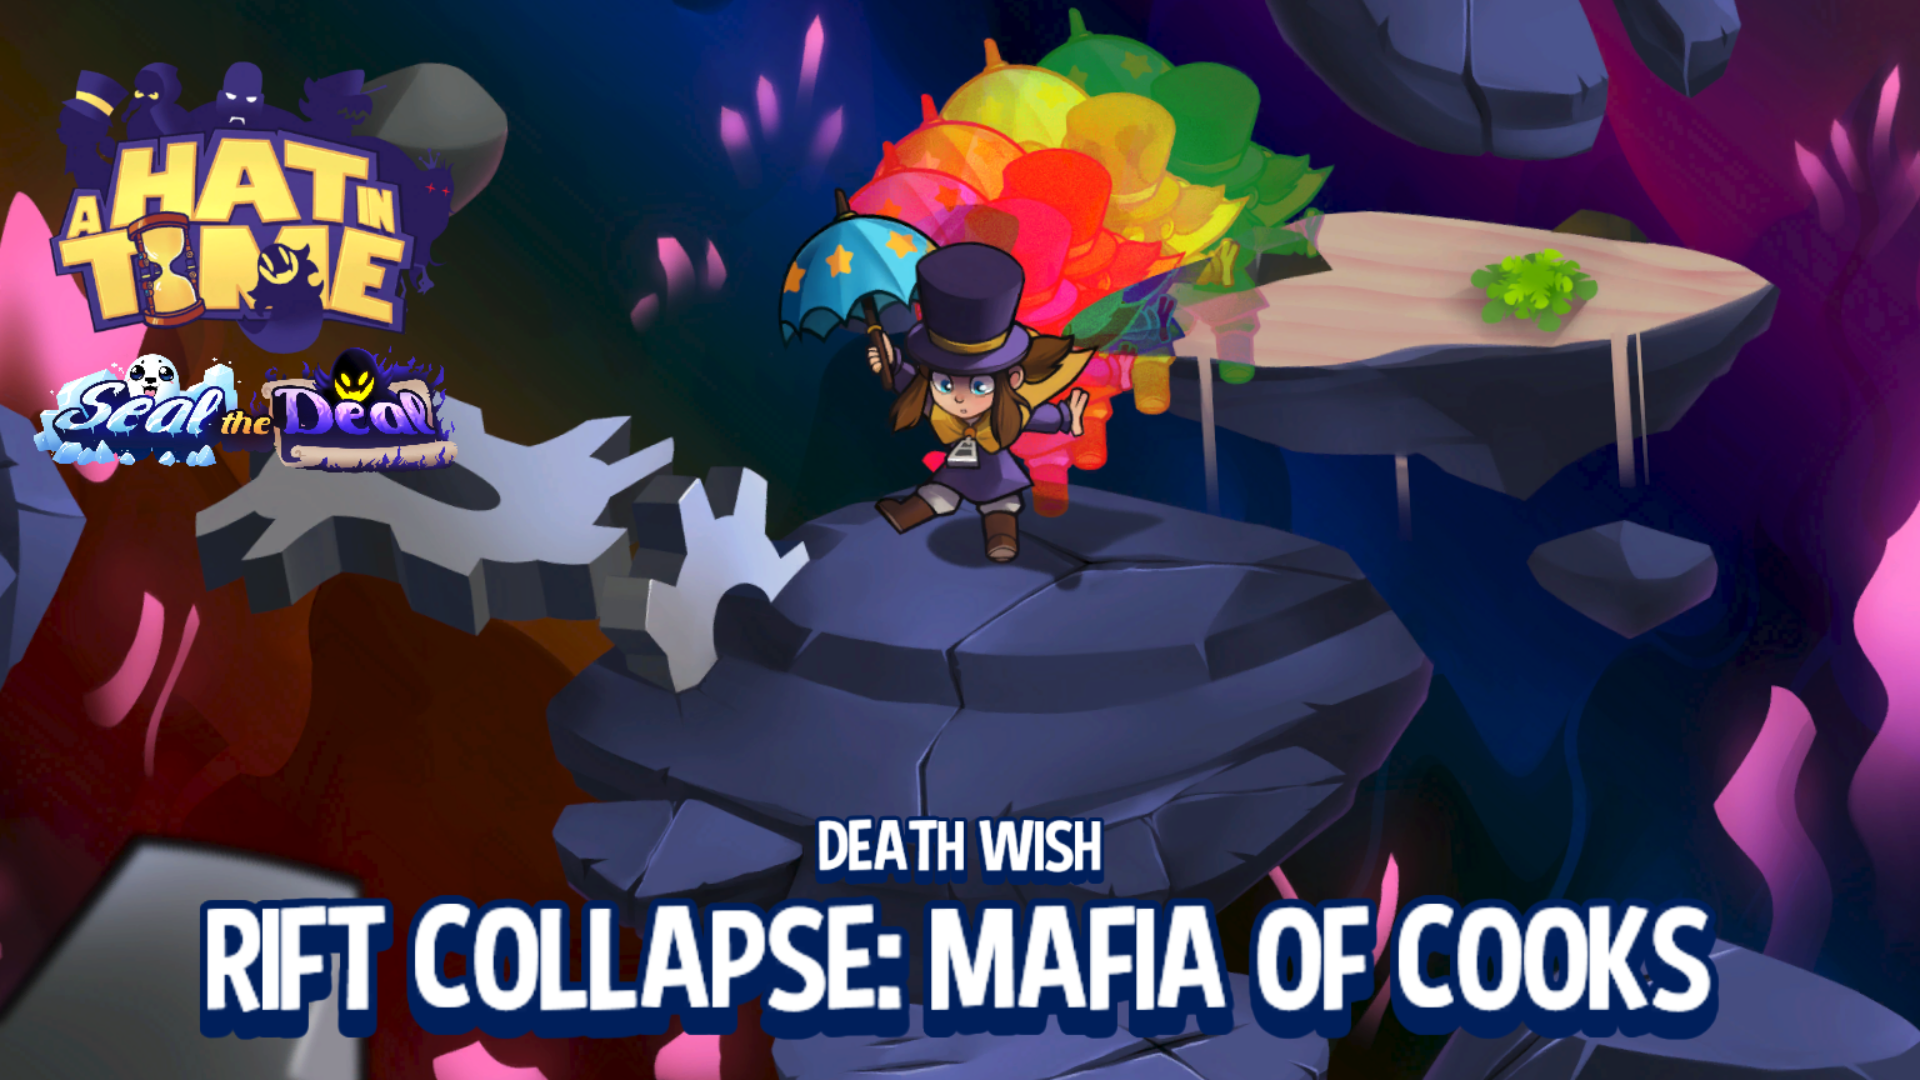 Rift Collapse: Mafia of Cooks